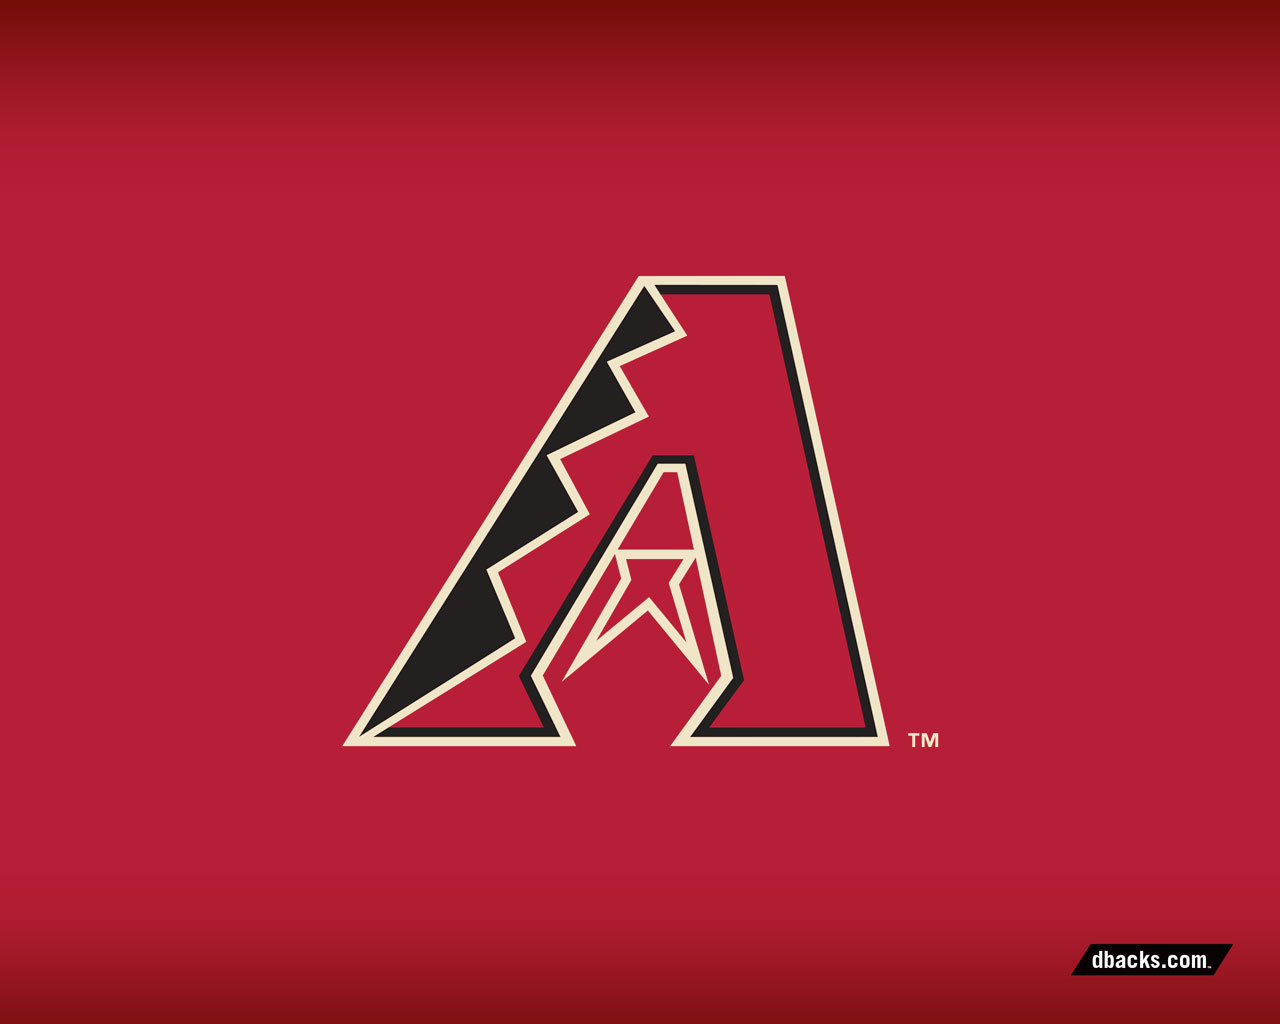 1280x1024 - Arizona Diamondbacks Wallpapers 12